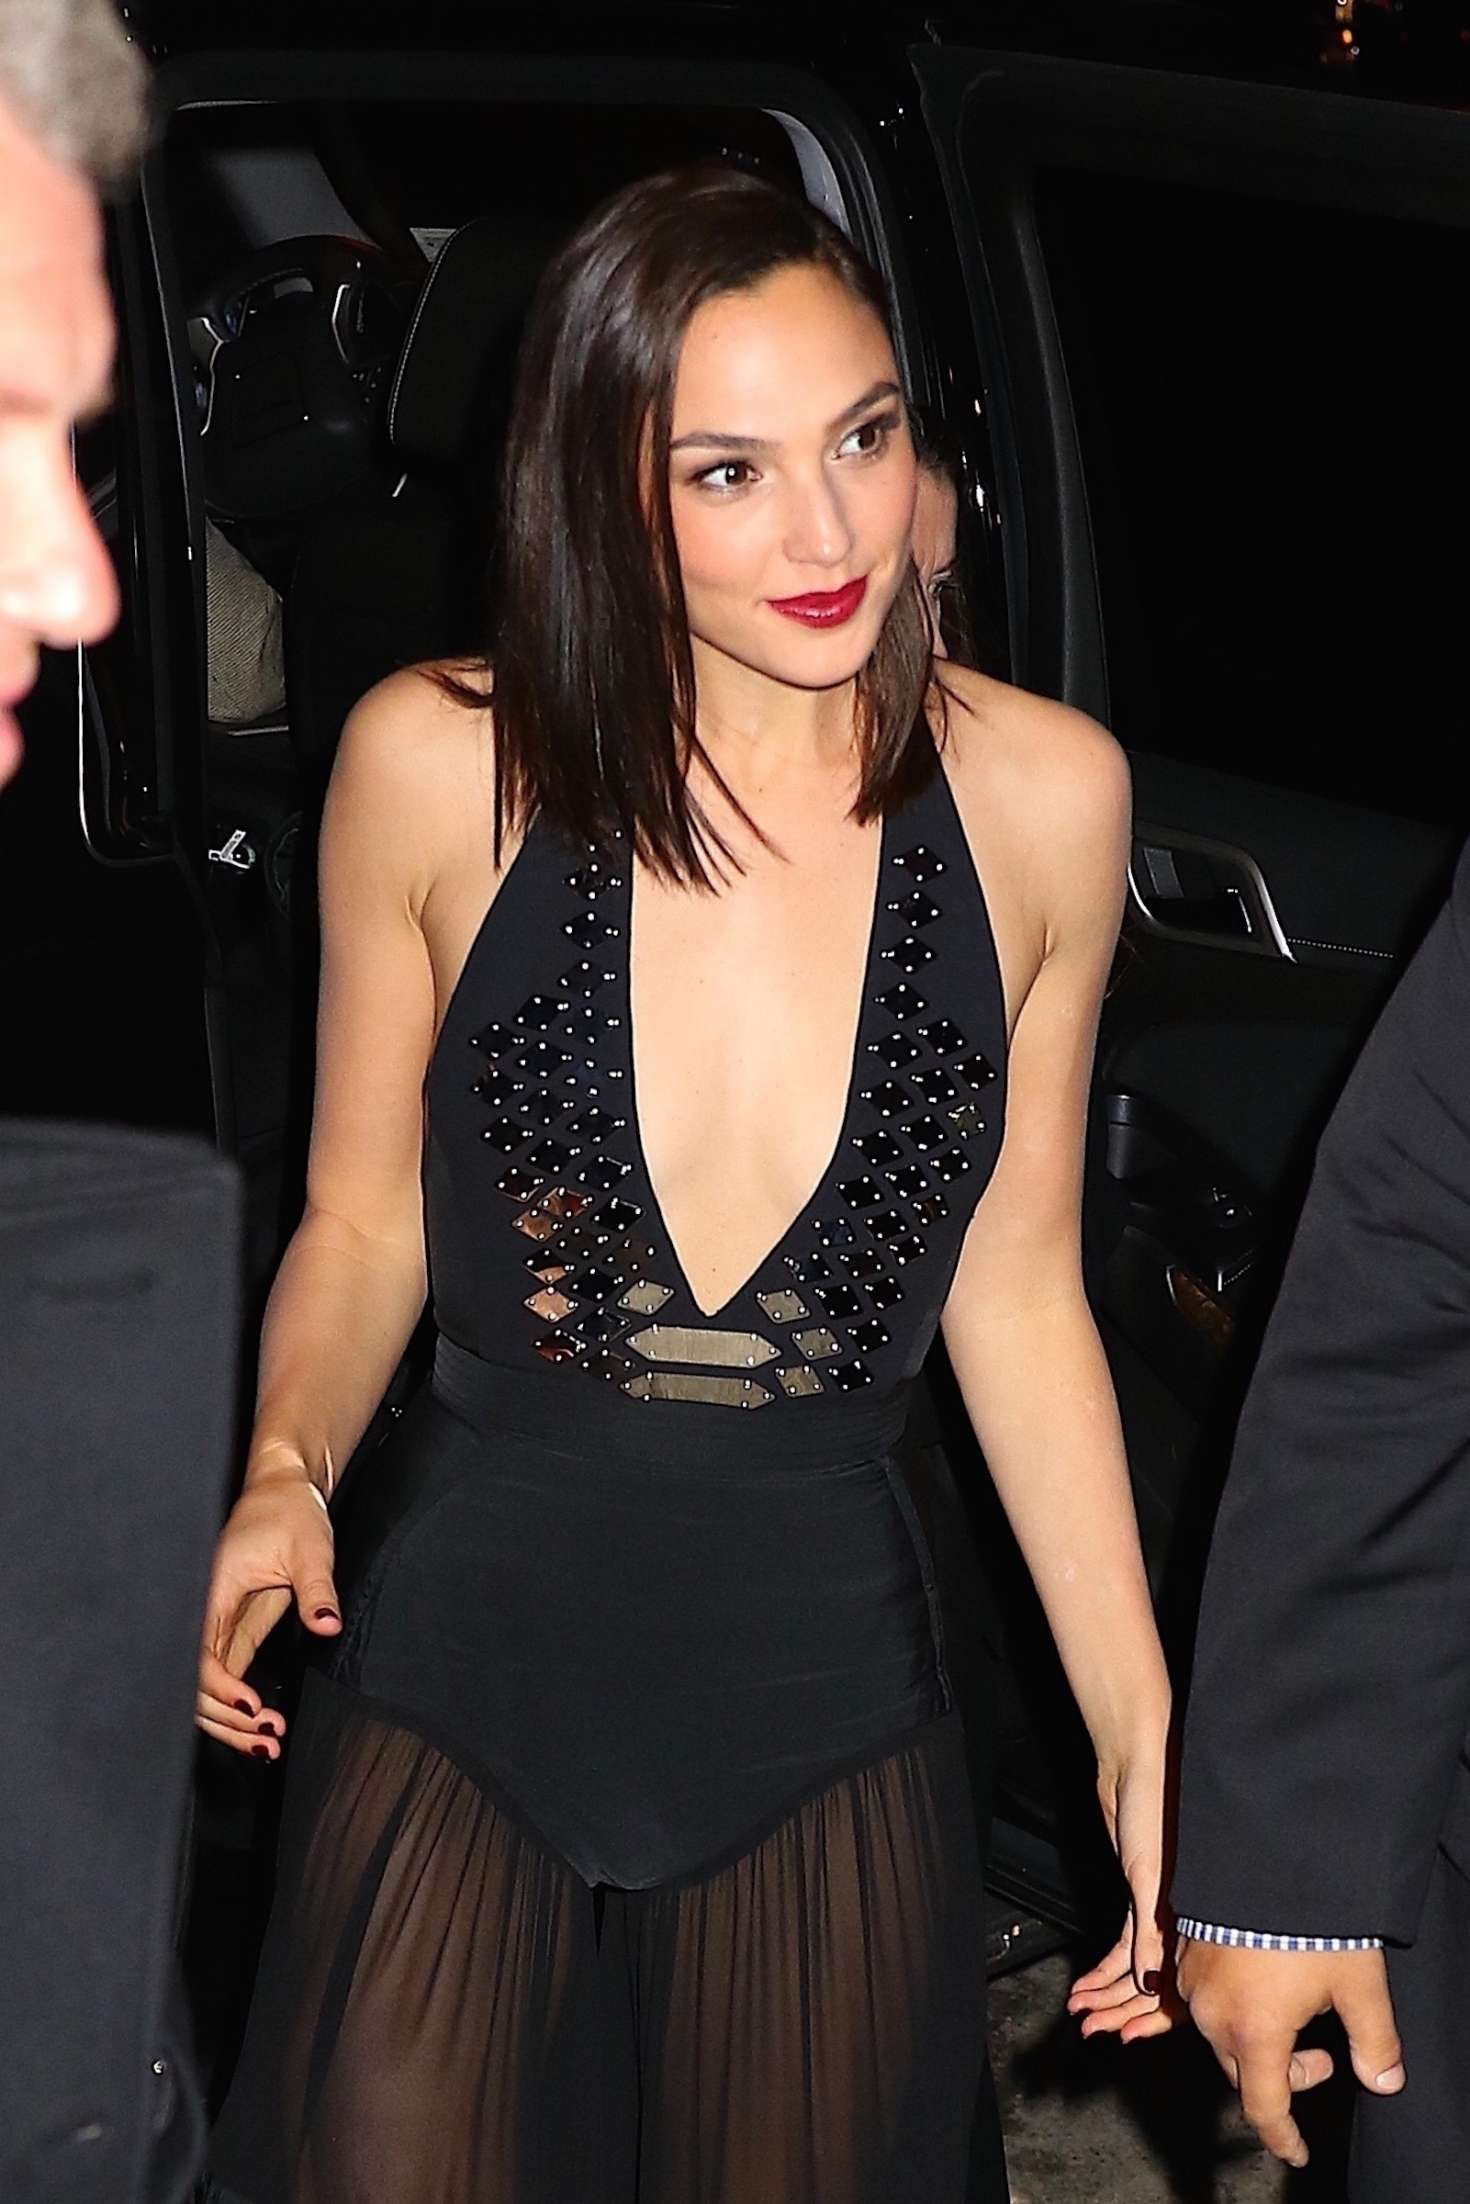 Gal Gadot - Leaving her hotel and arriving to an event in NY